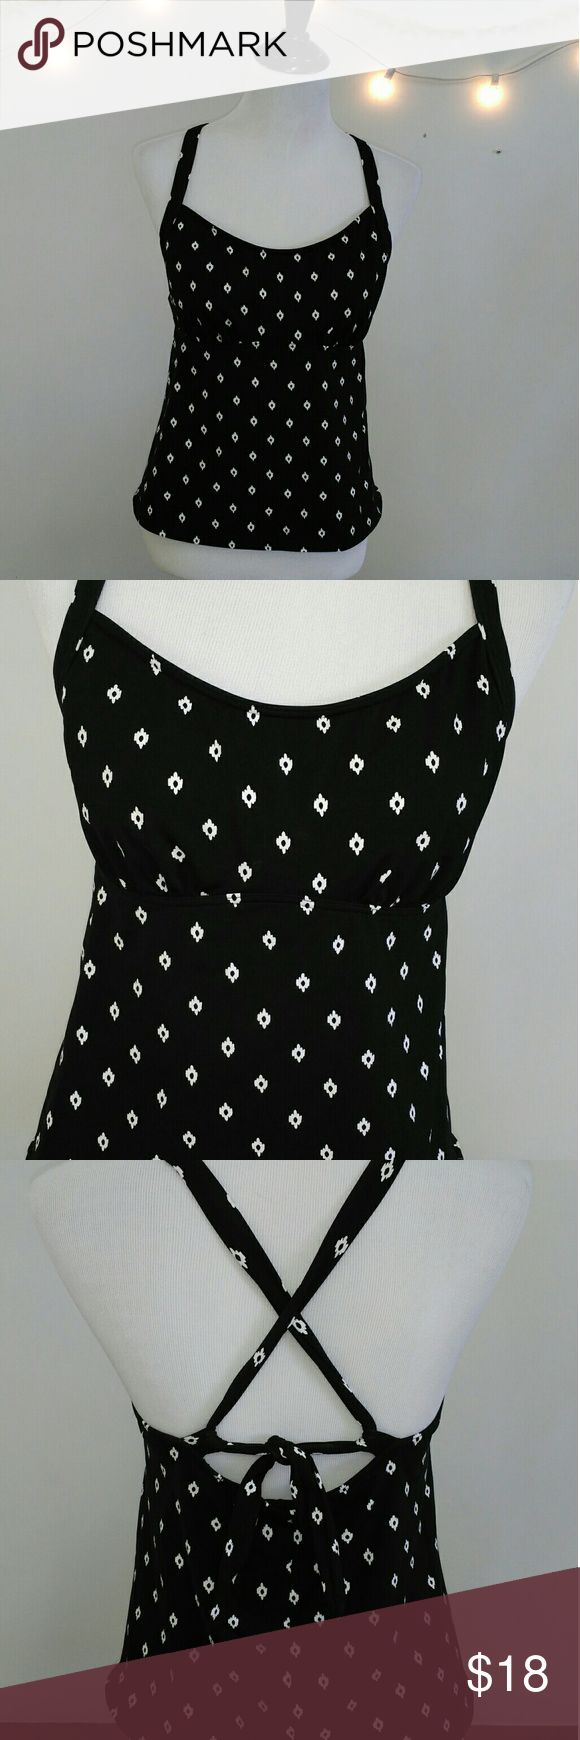 EUC Lands' End Women's Tankini EUC Lands' End Women's Black/White Tankini. Has built in soft underwire bra. Super cute, comfortable and flattering. In excellent condition, please ask questions all sales are final. Accept purchase when received, thanks for looking. Lands' End Swim